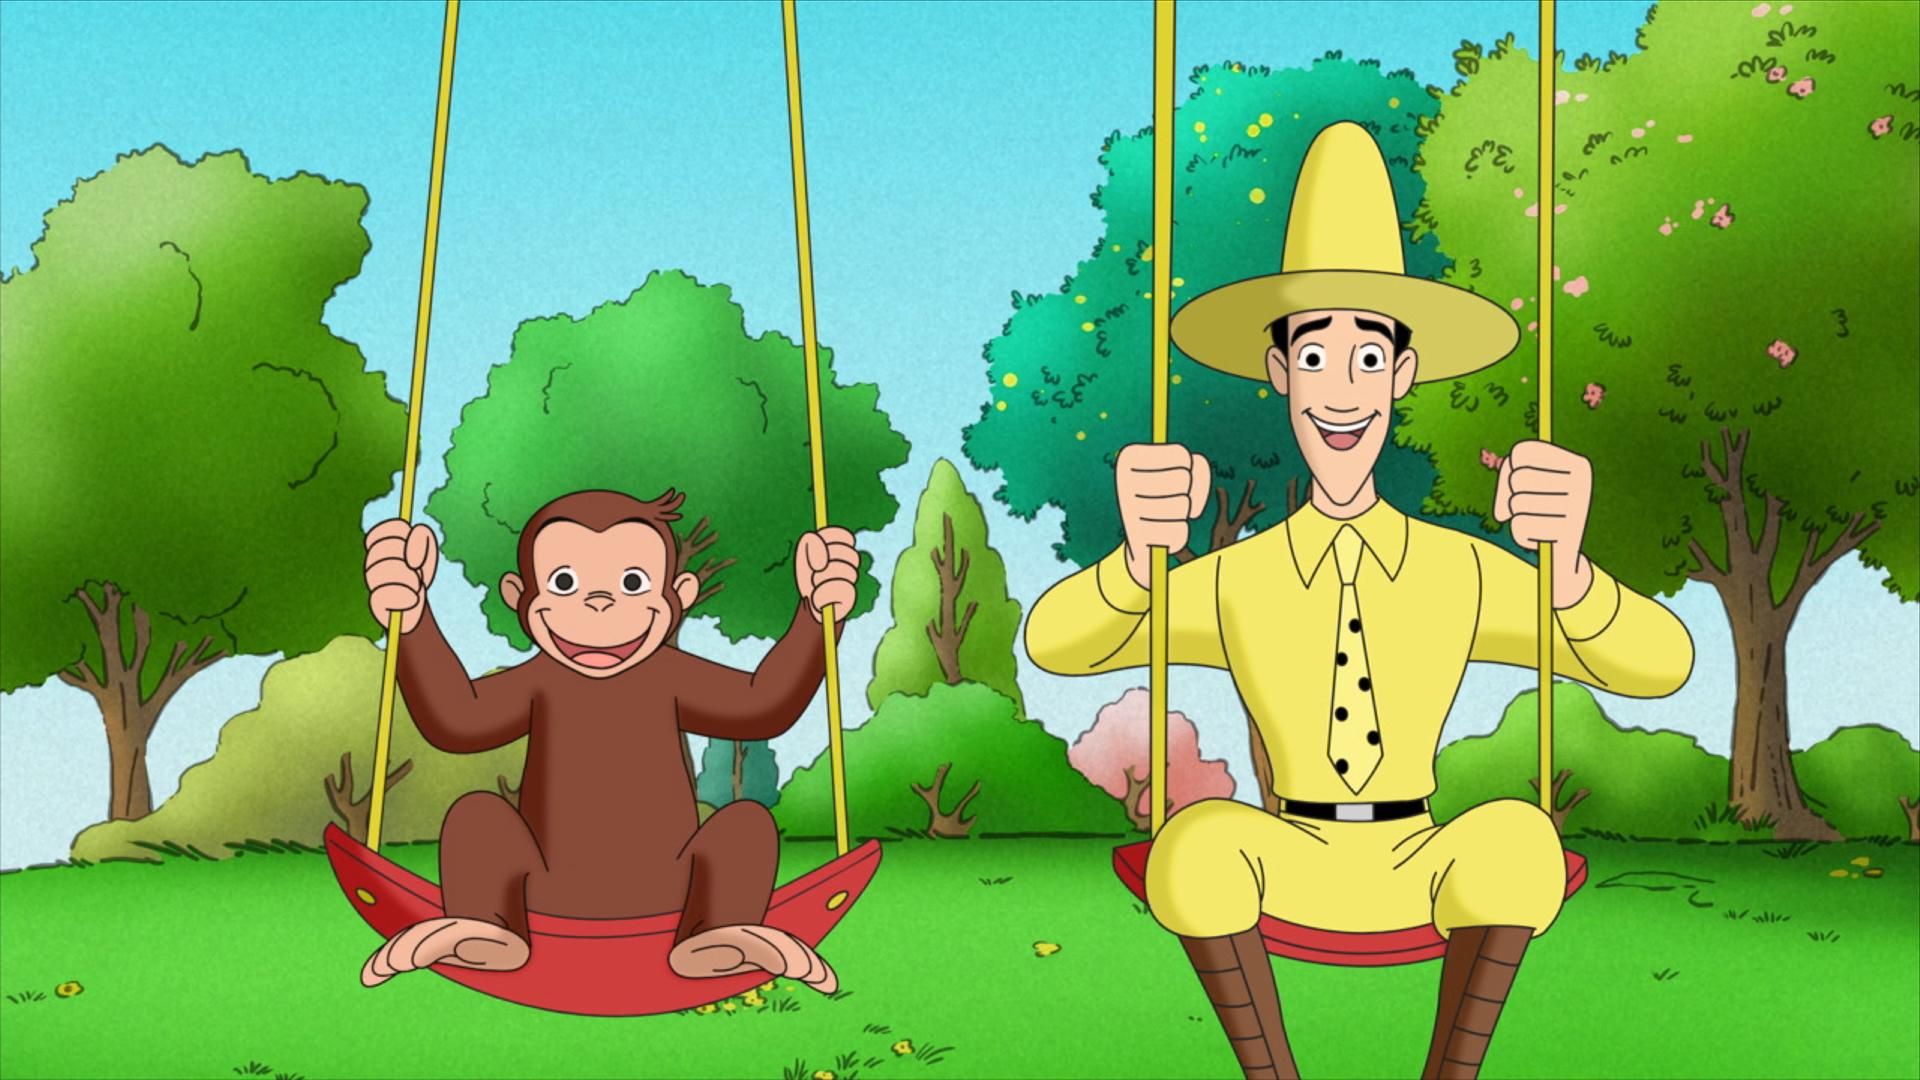 curious george f wallpaper 1920x1080 185533 wallpaperup